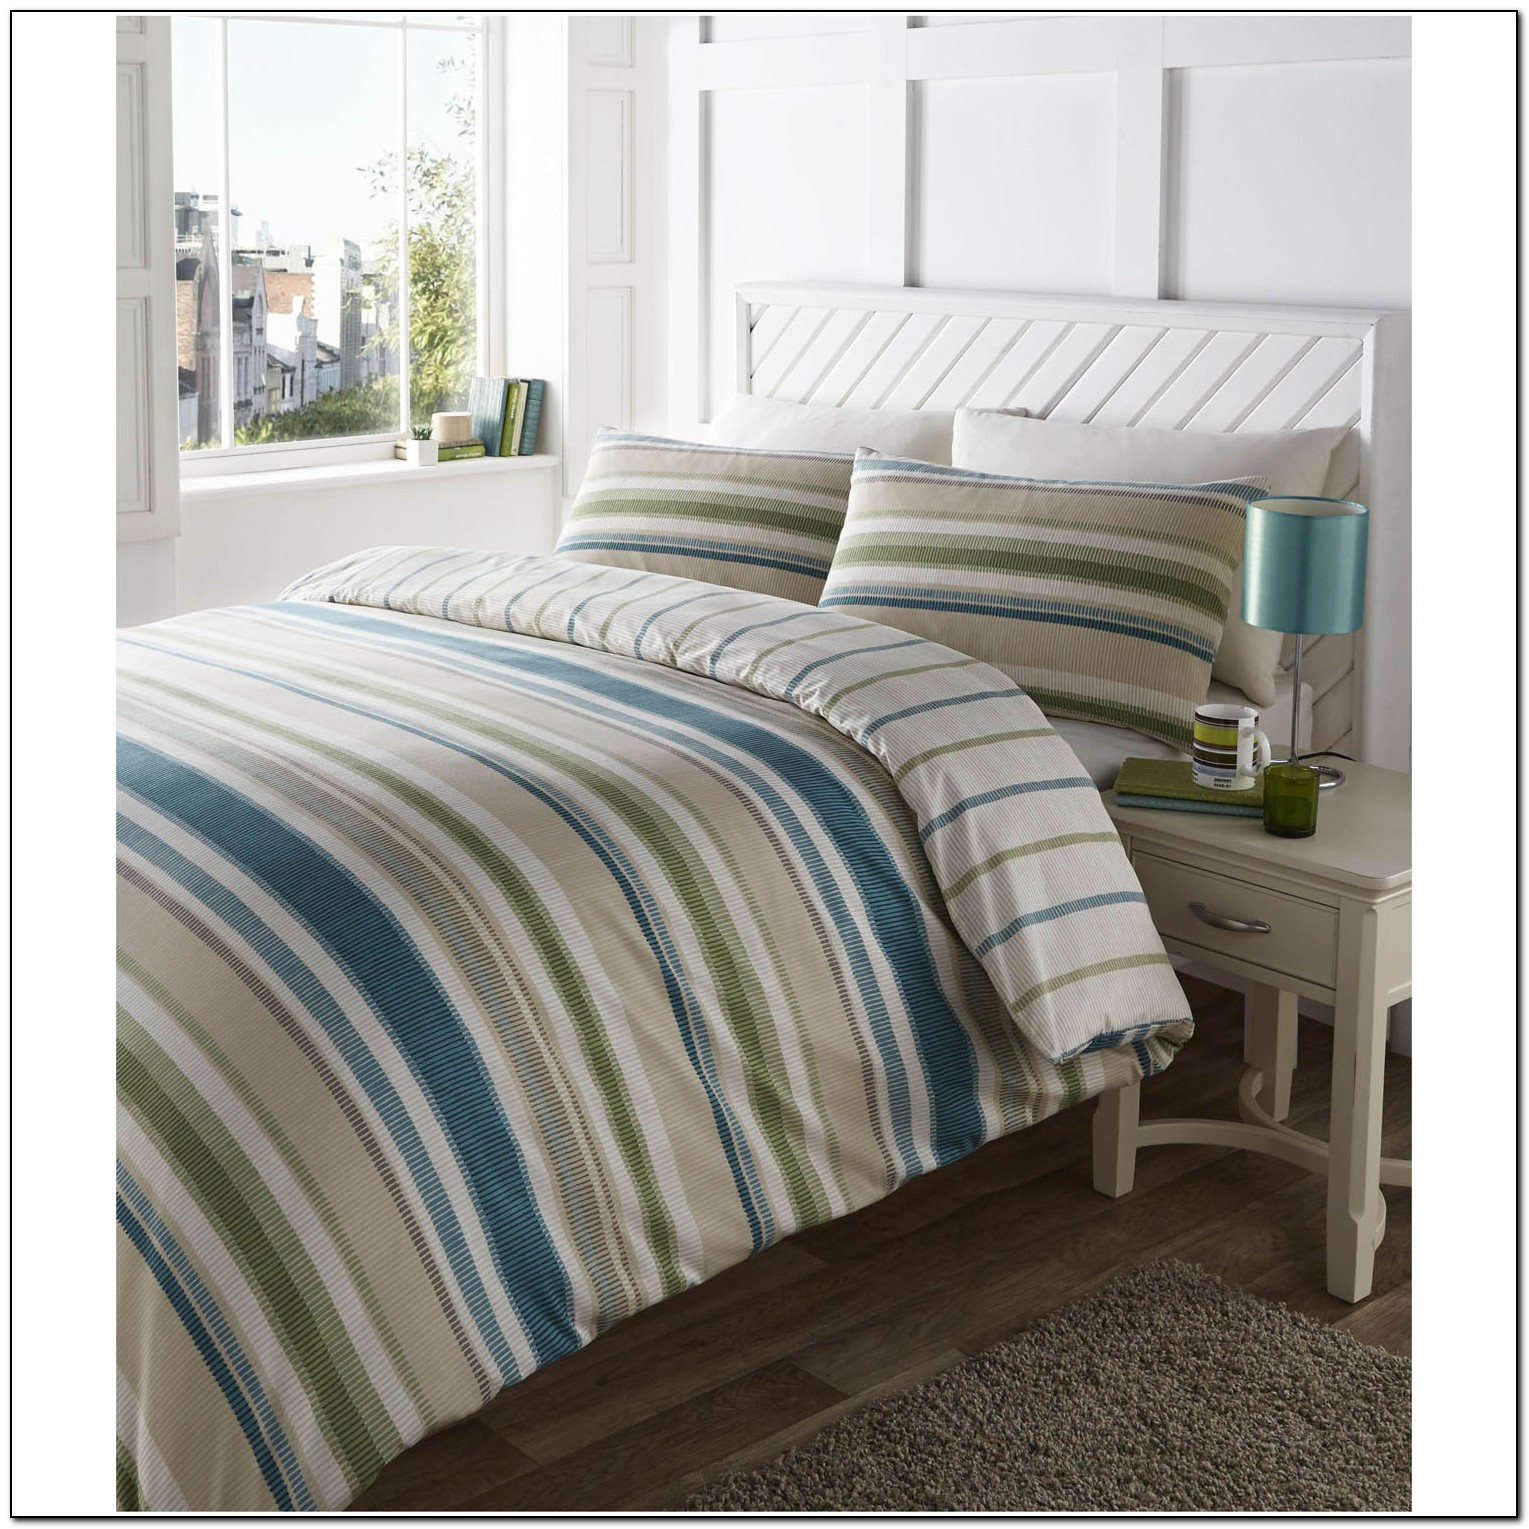 Brown And Teal Bedding Sets Beds Home Design Ideas 4RDbO7eQy